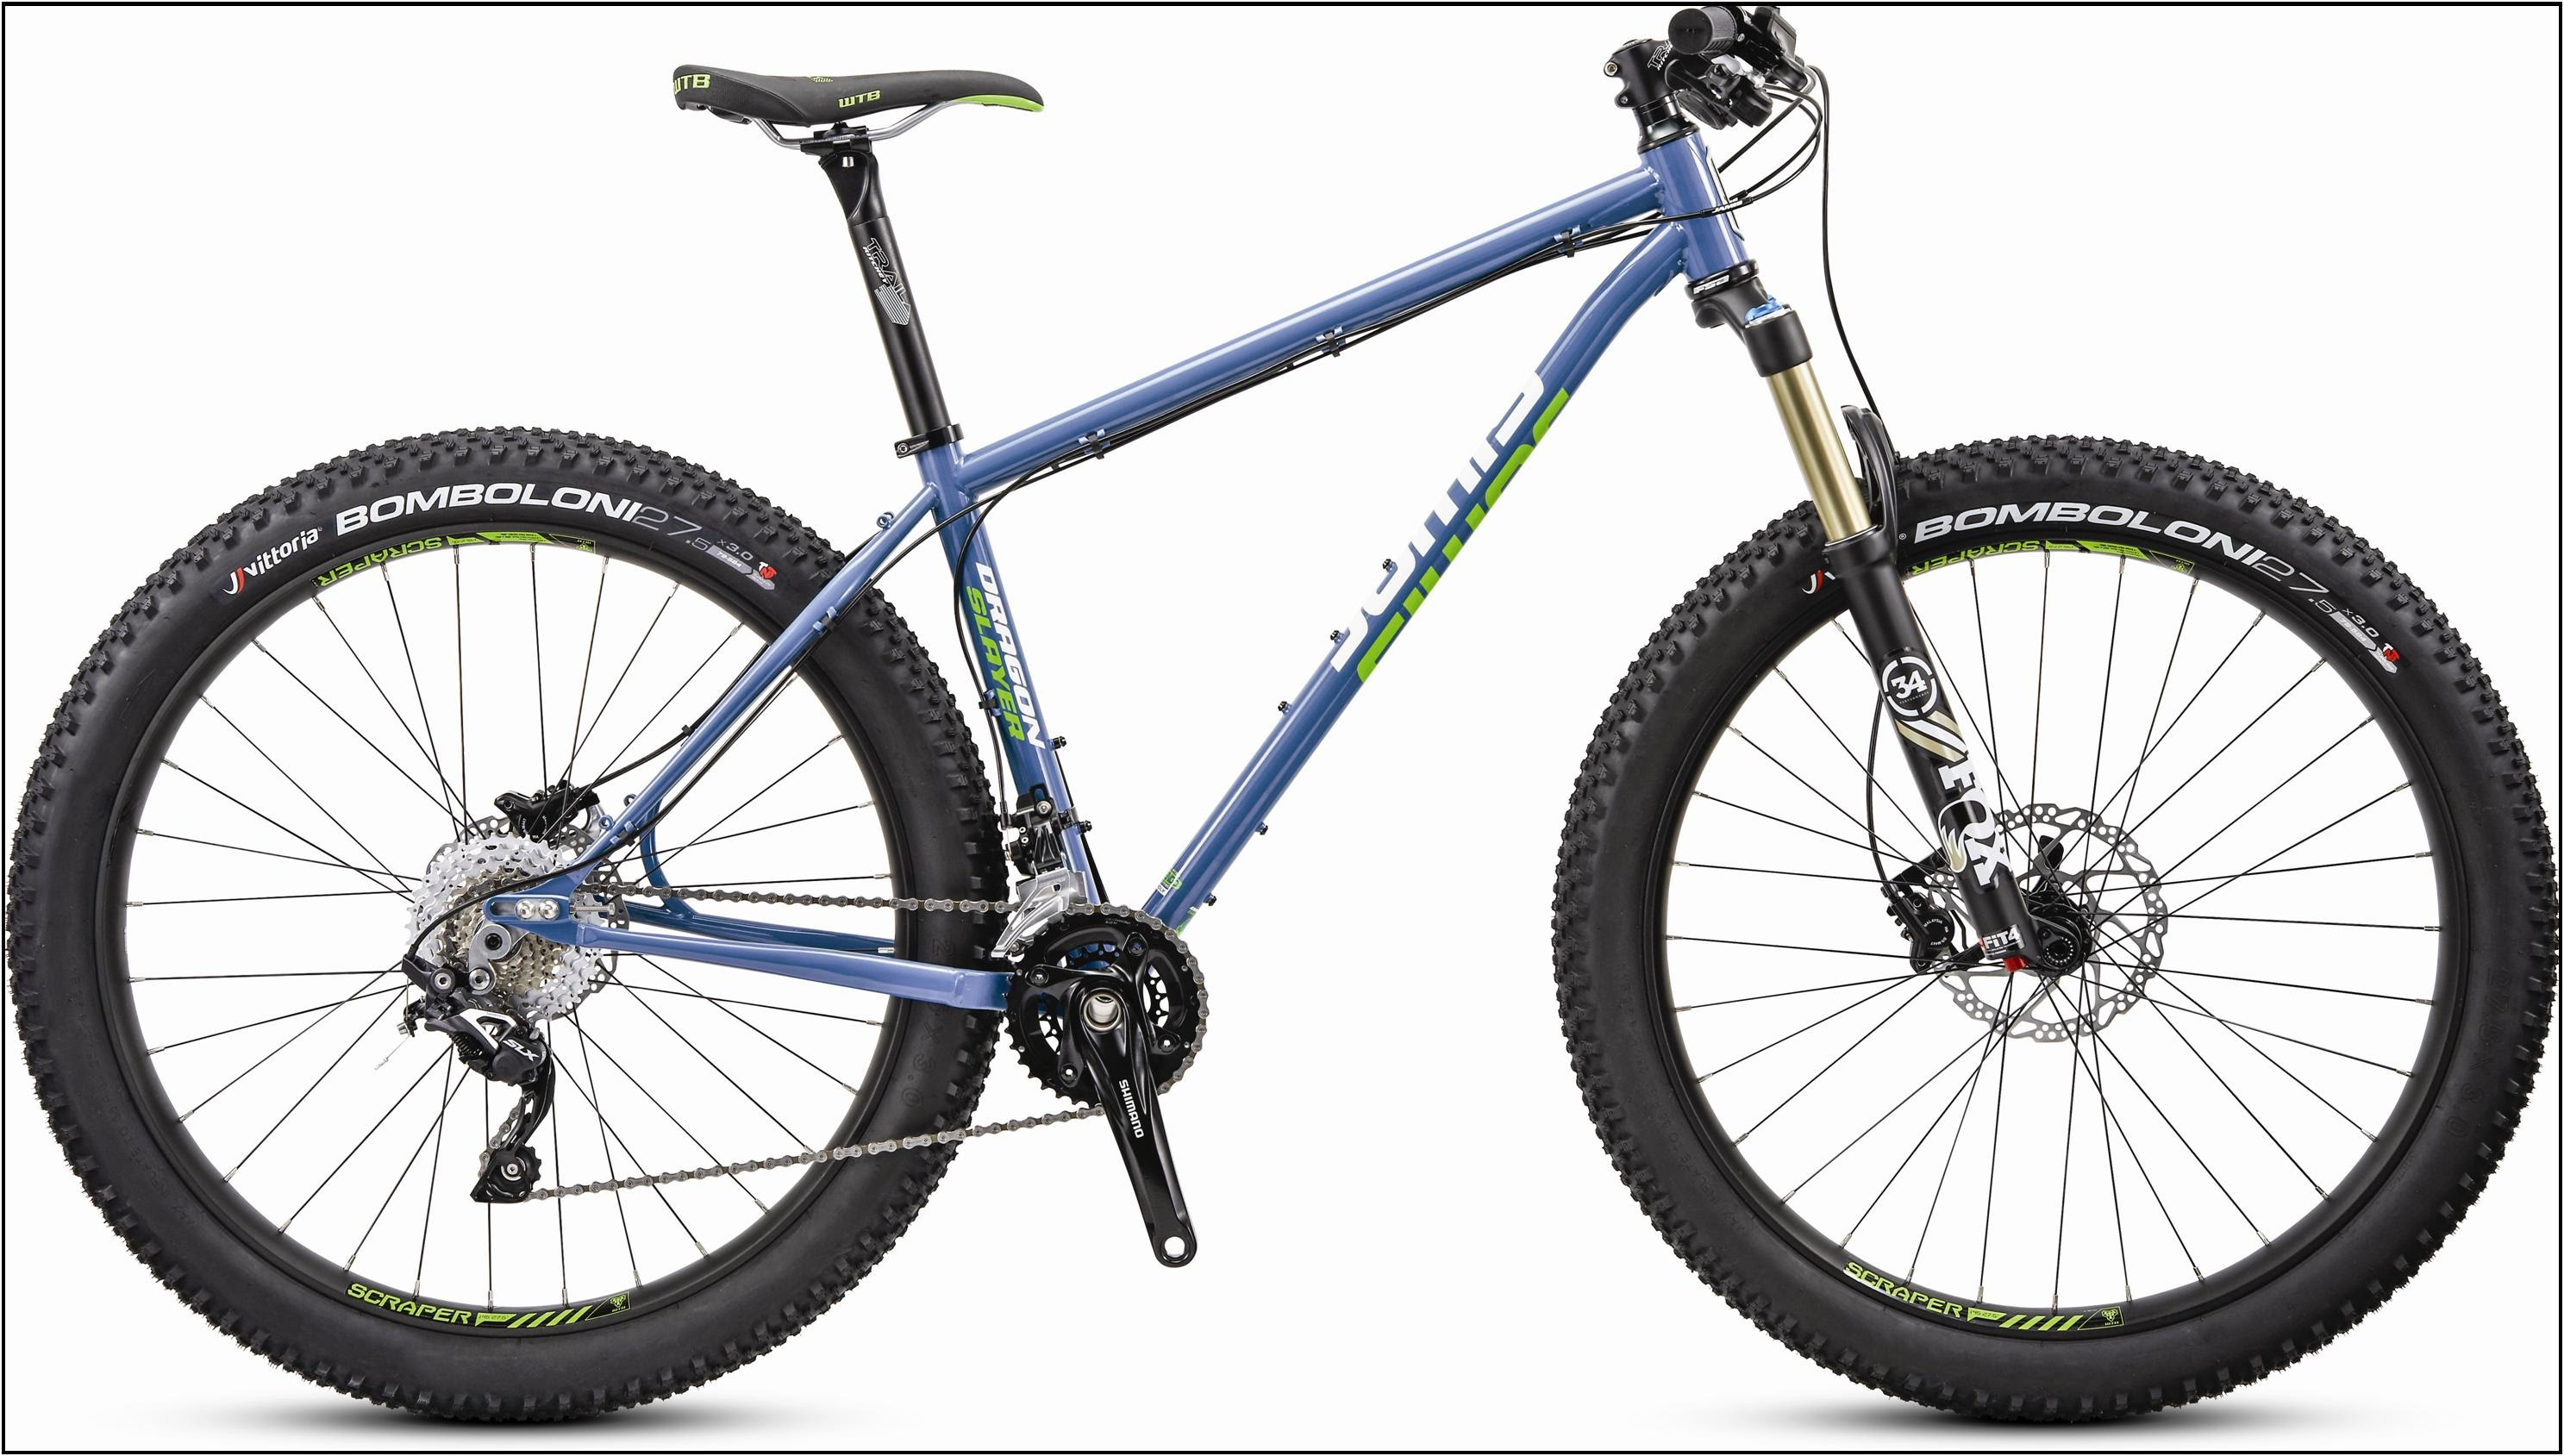 650 plus jamis dragonslayer mountain bike